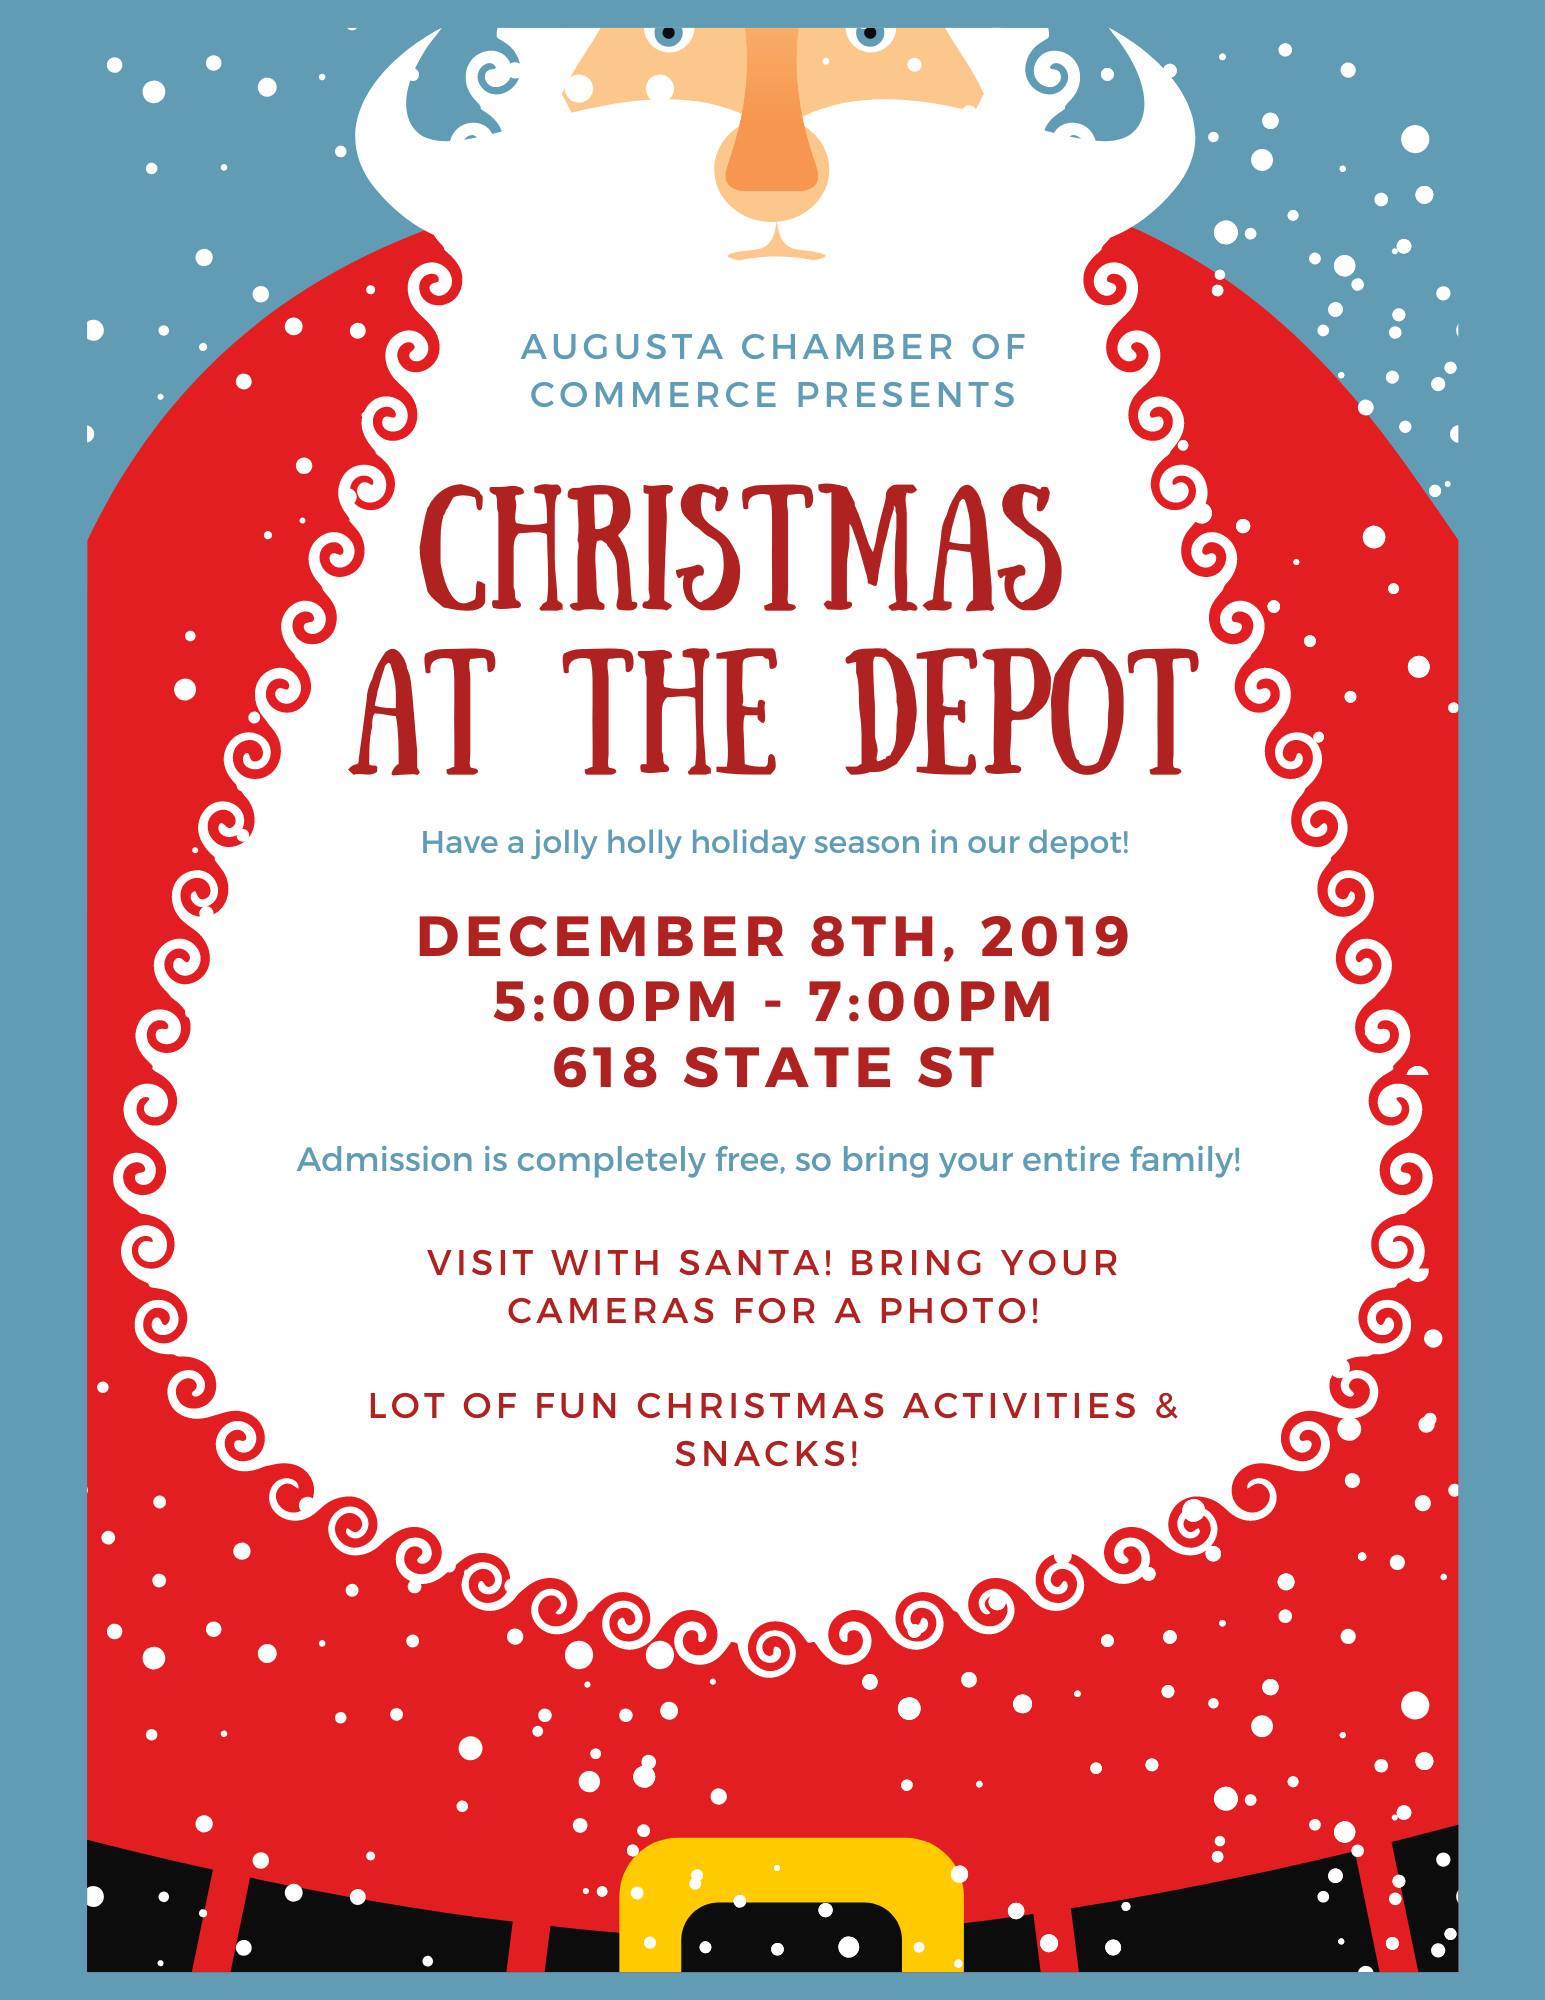 Christmas at the Depot - Dec 8 - The Depot